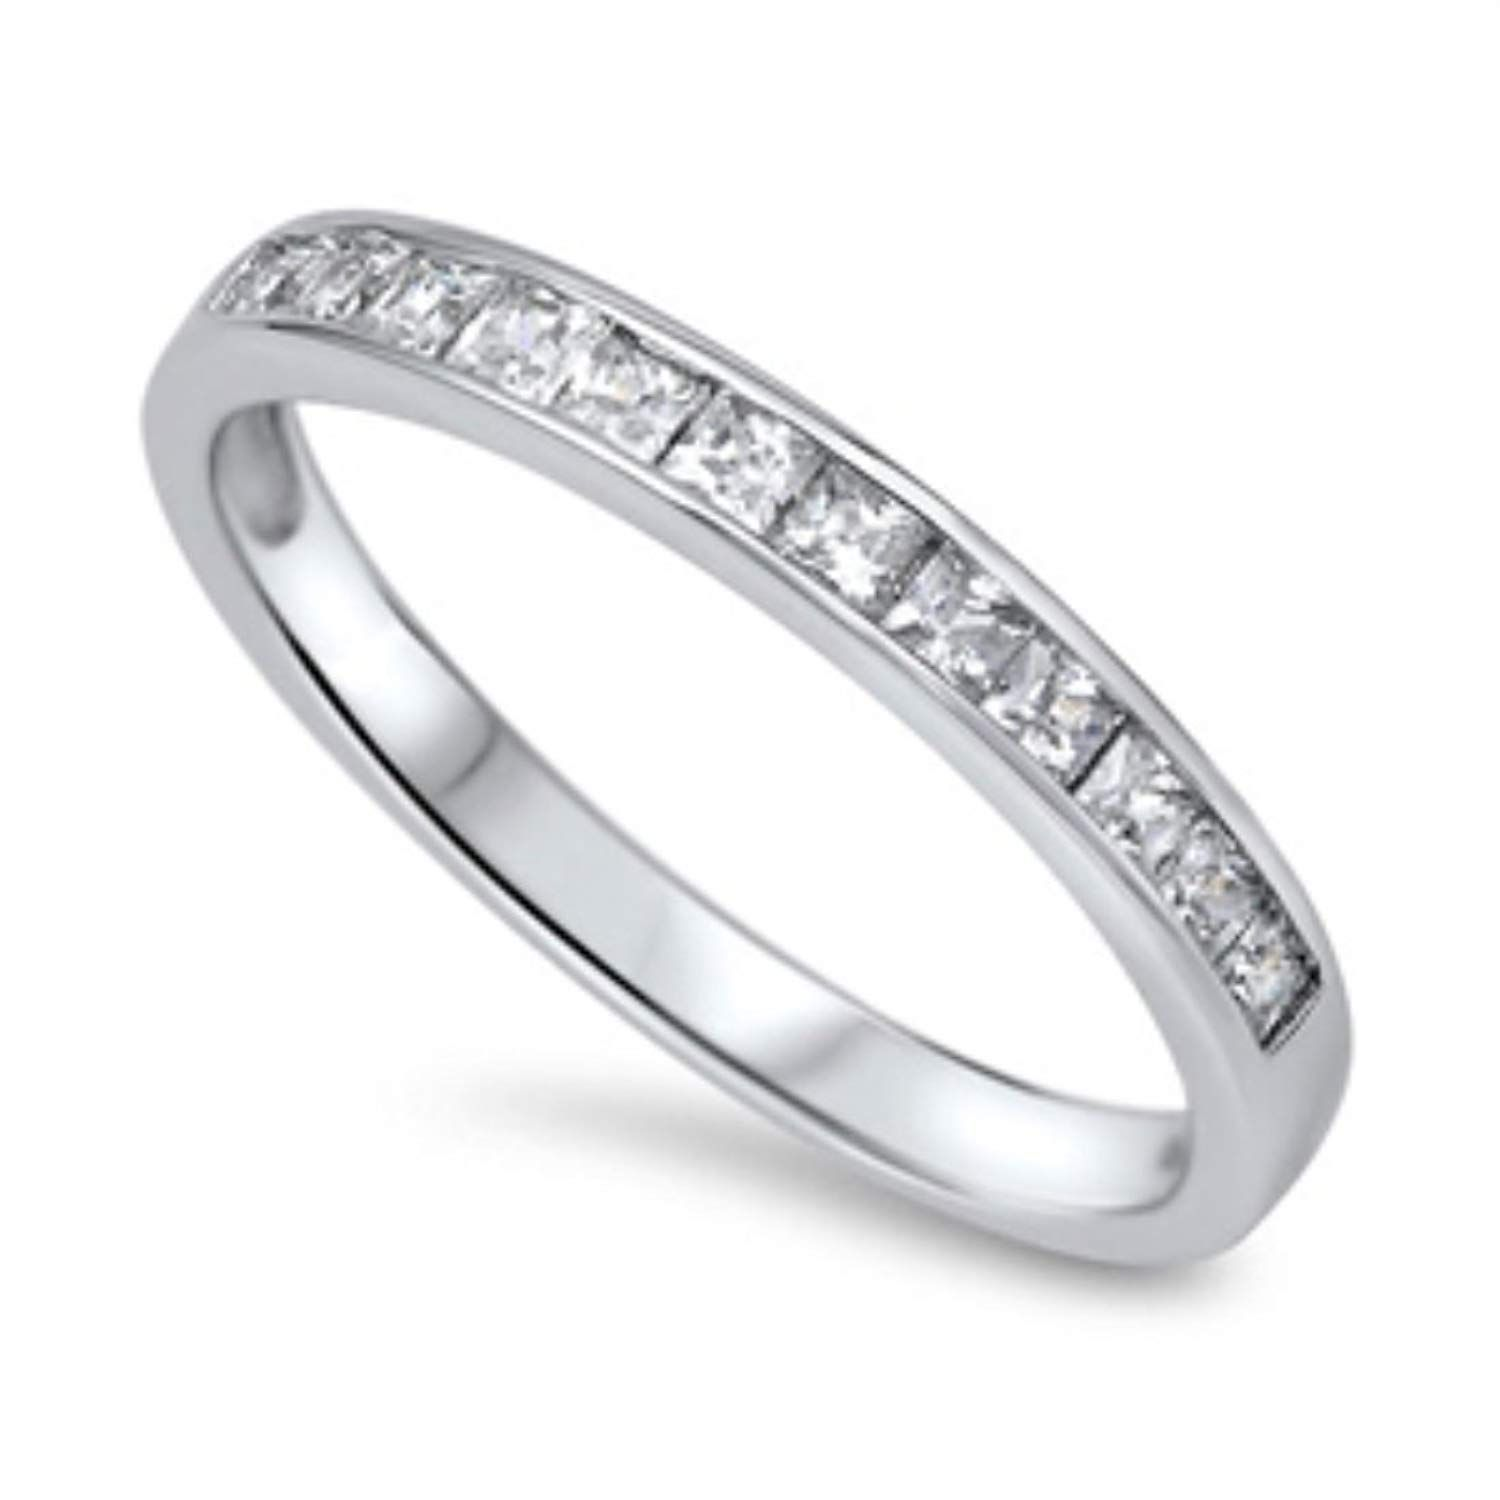 Tianyi Jewelry Stainless Steel CZ Engagement Wedding Rings Band For Men or Women